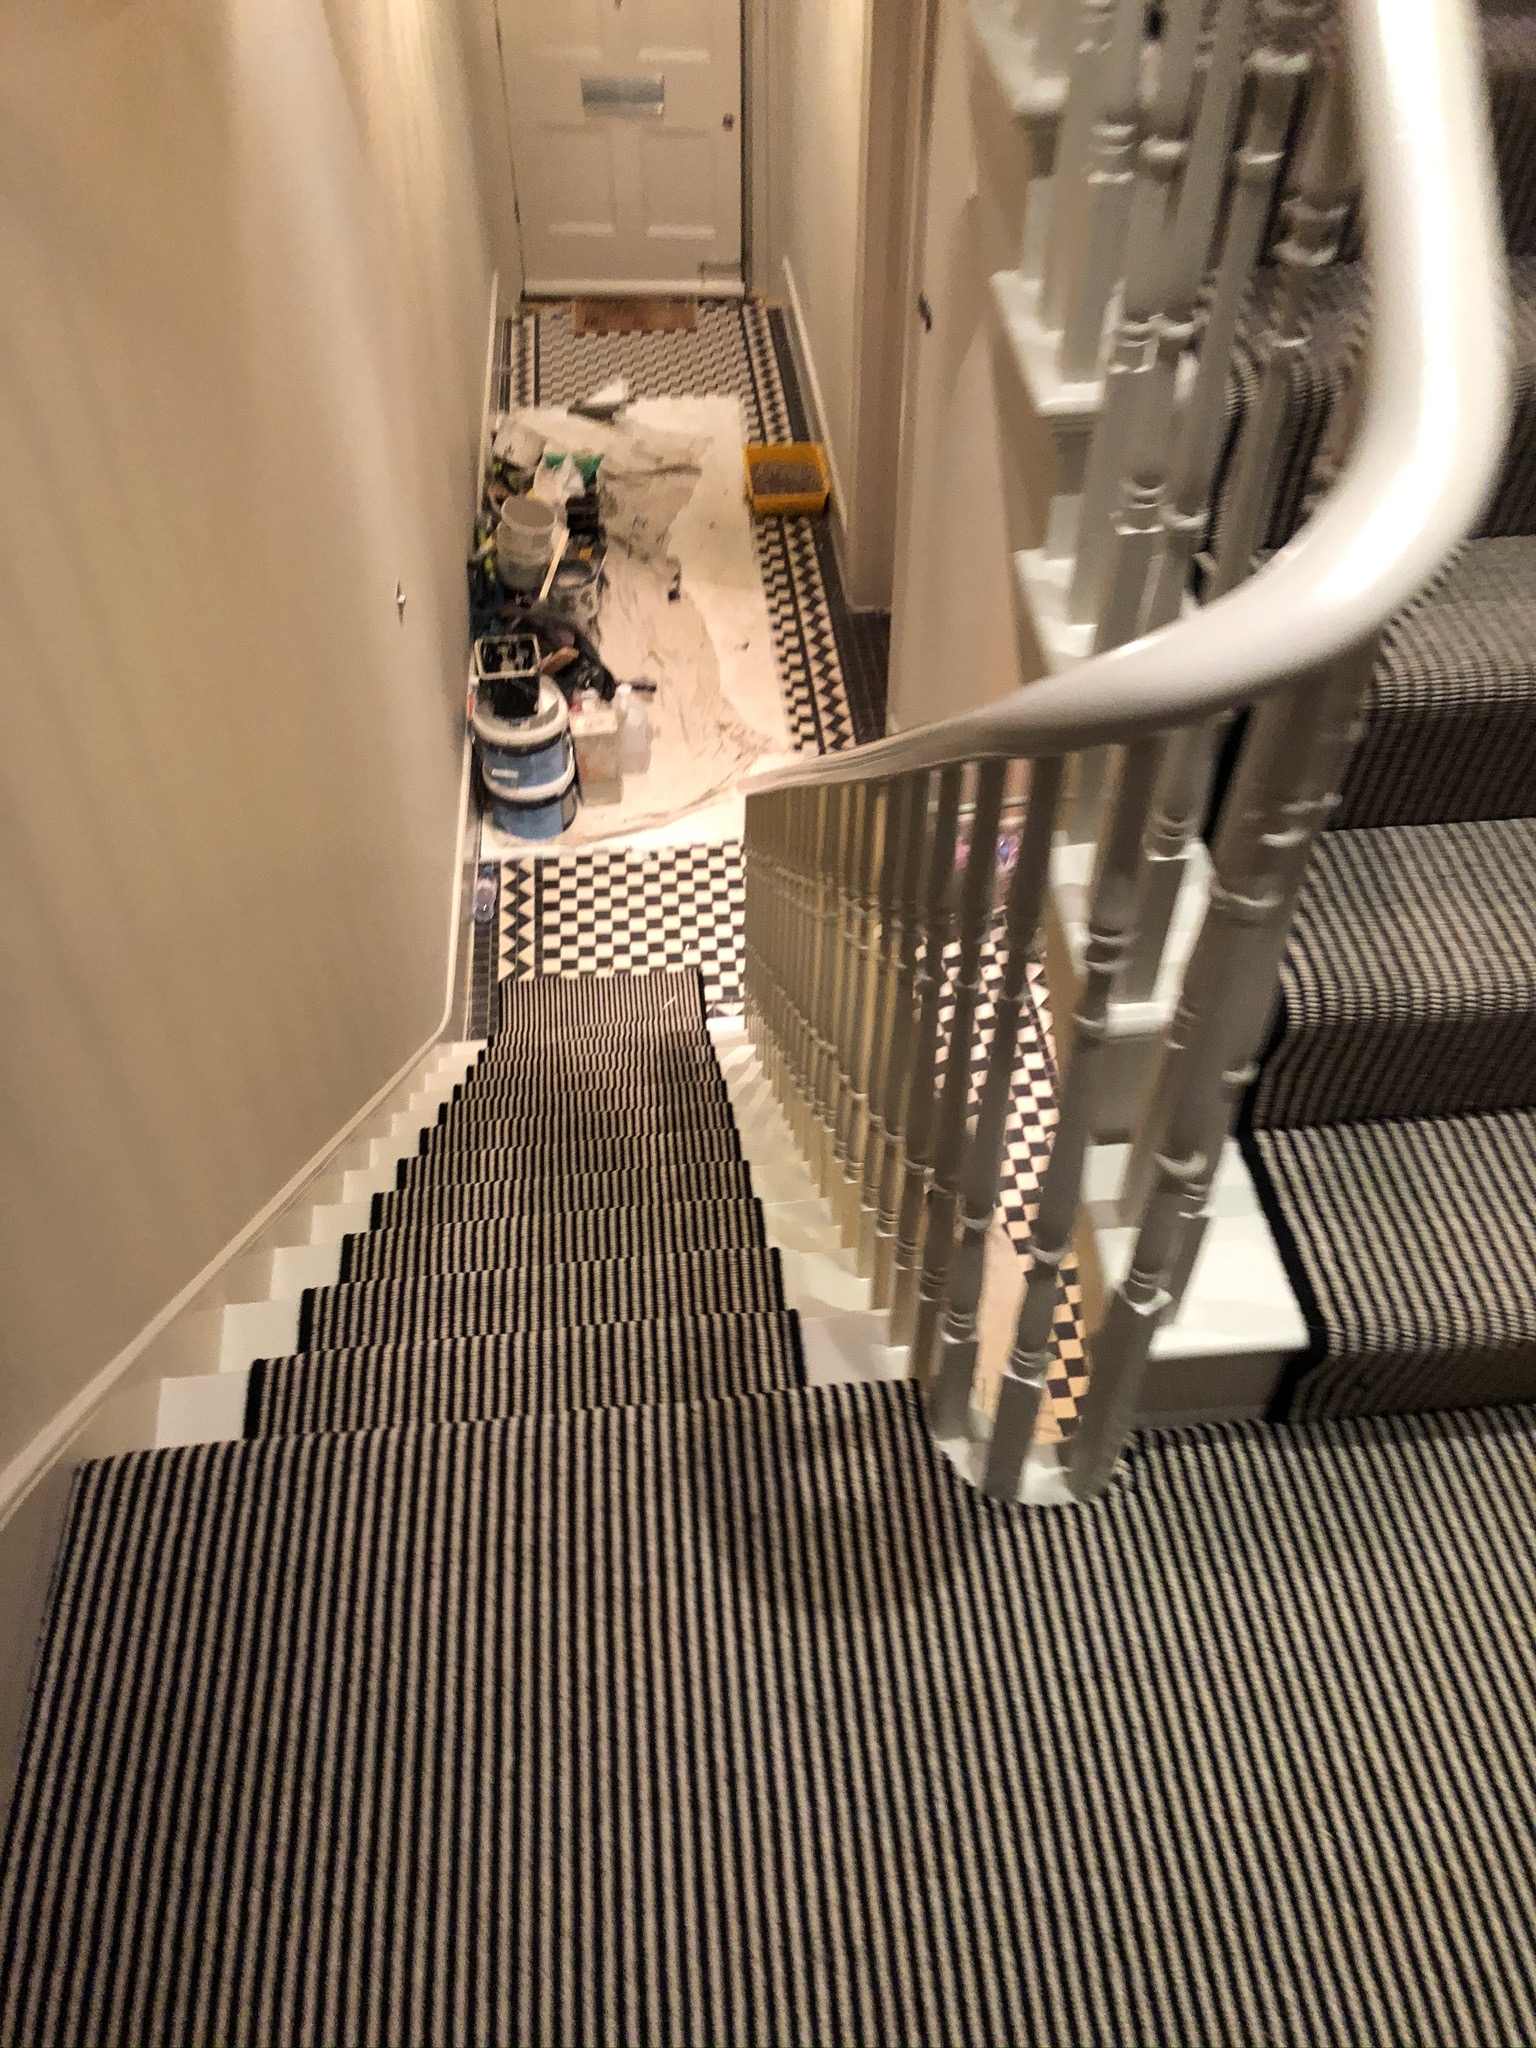 Hugh Mackay Carpets Deco Loop Two-Tone Magpie Black & White Stripe Carpet to Premises in Richmond 4